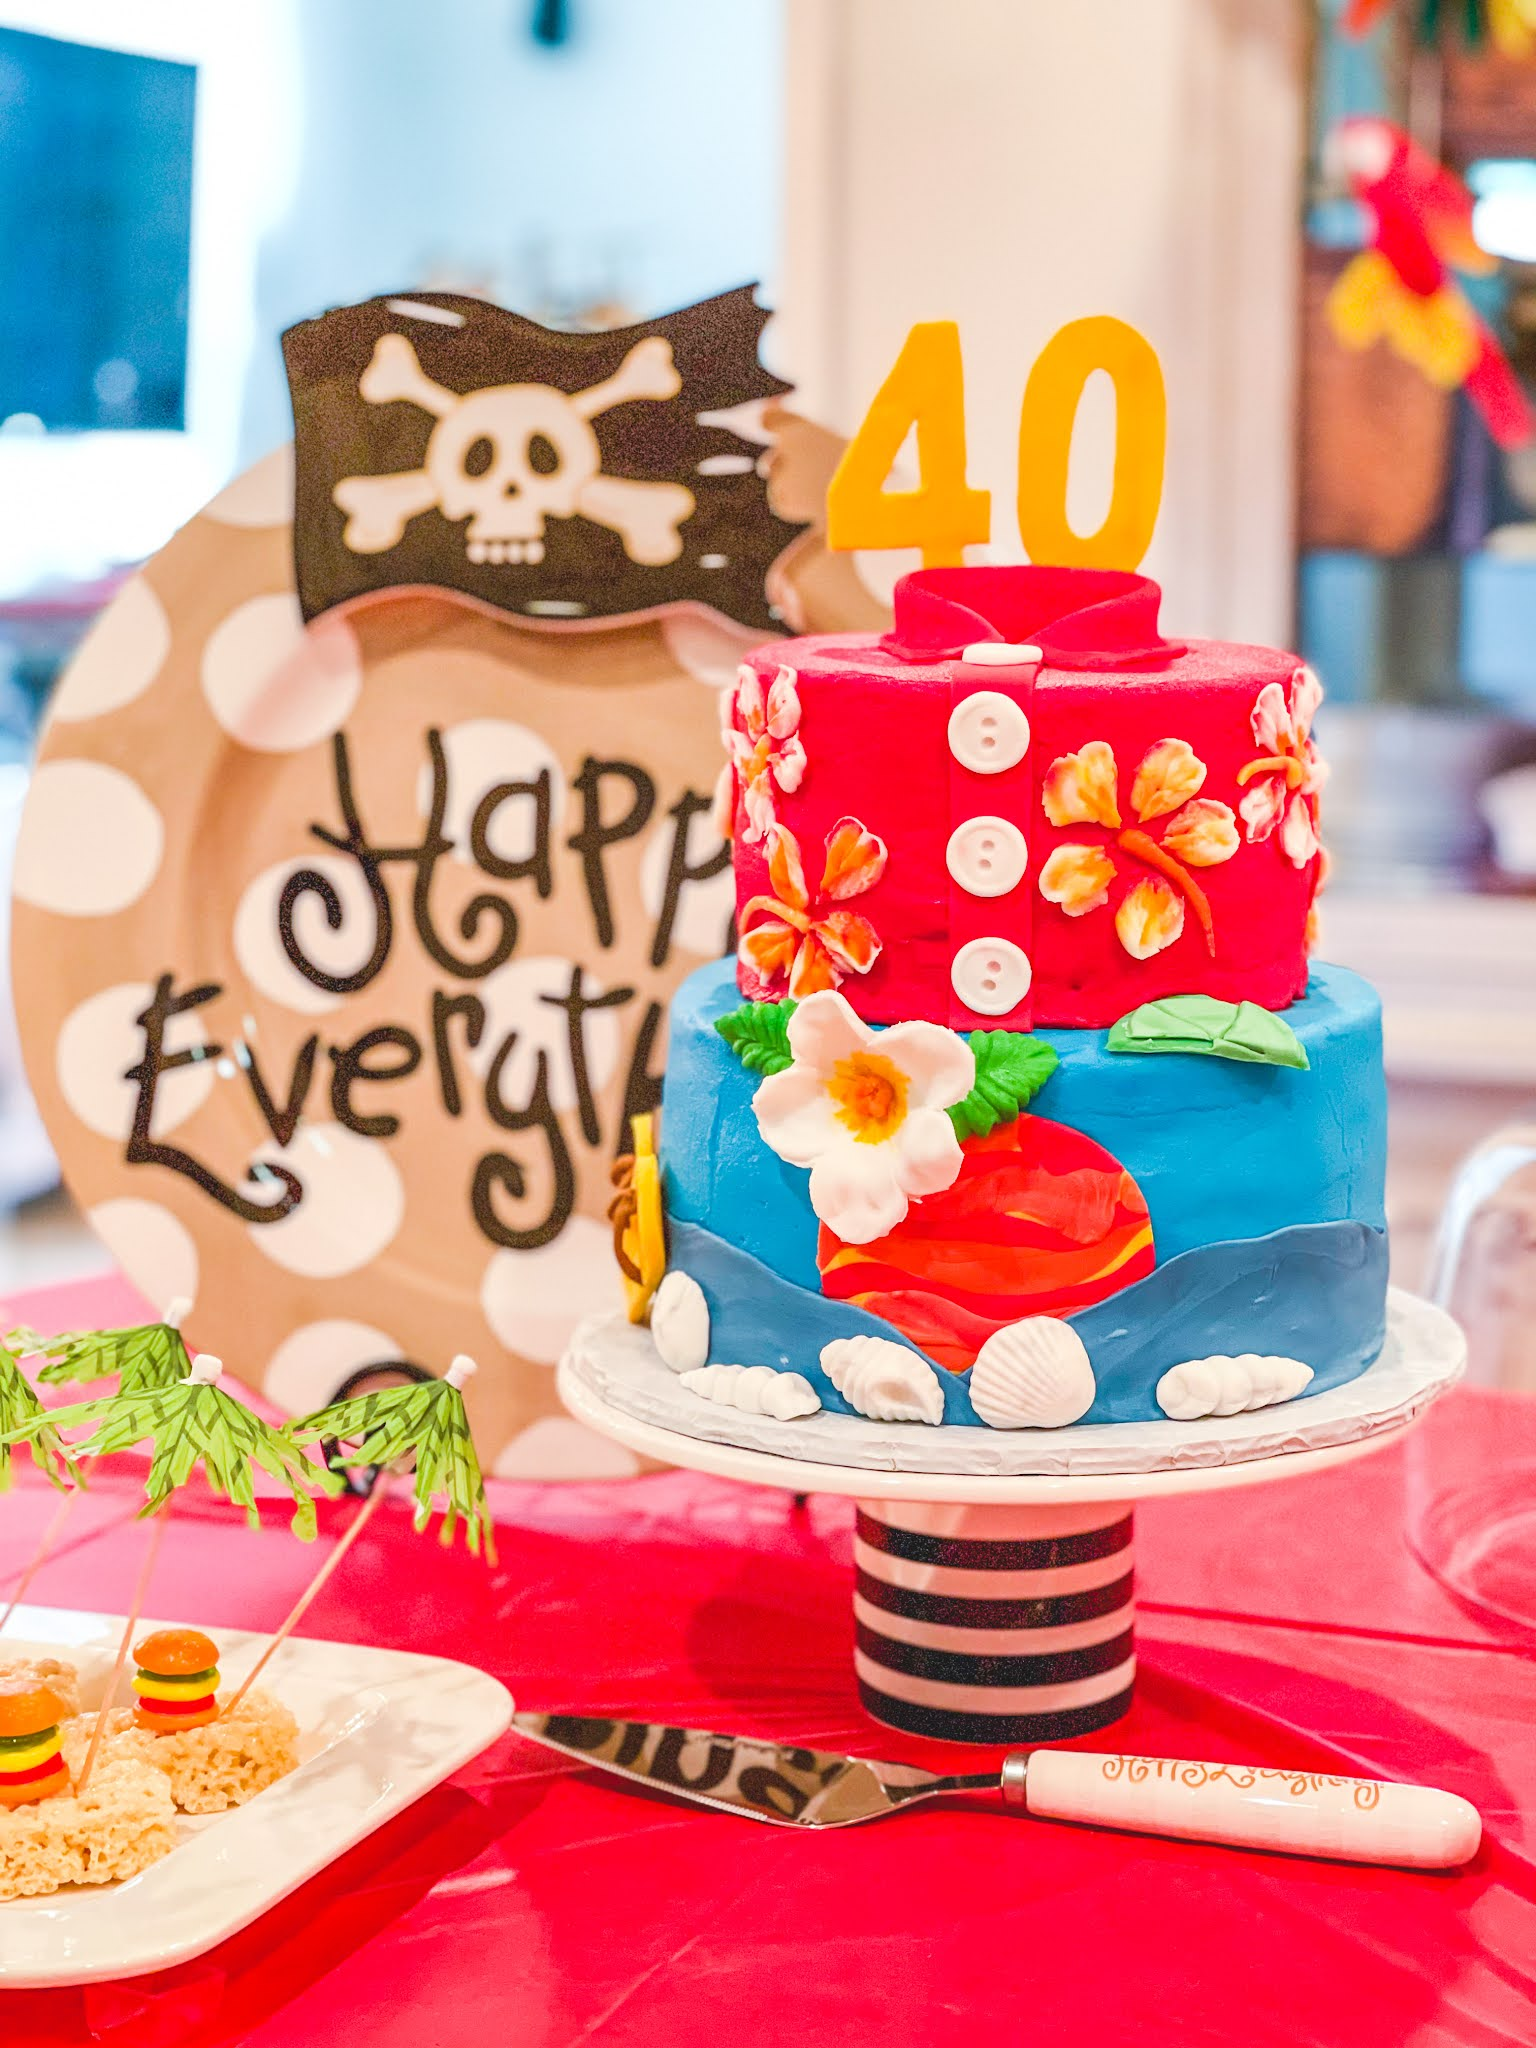 A Pirate Looks At 40: A Jimmy Buffett Inspired Birthday Party